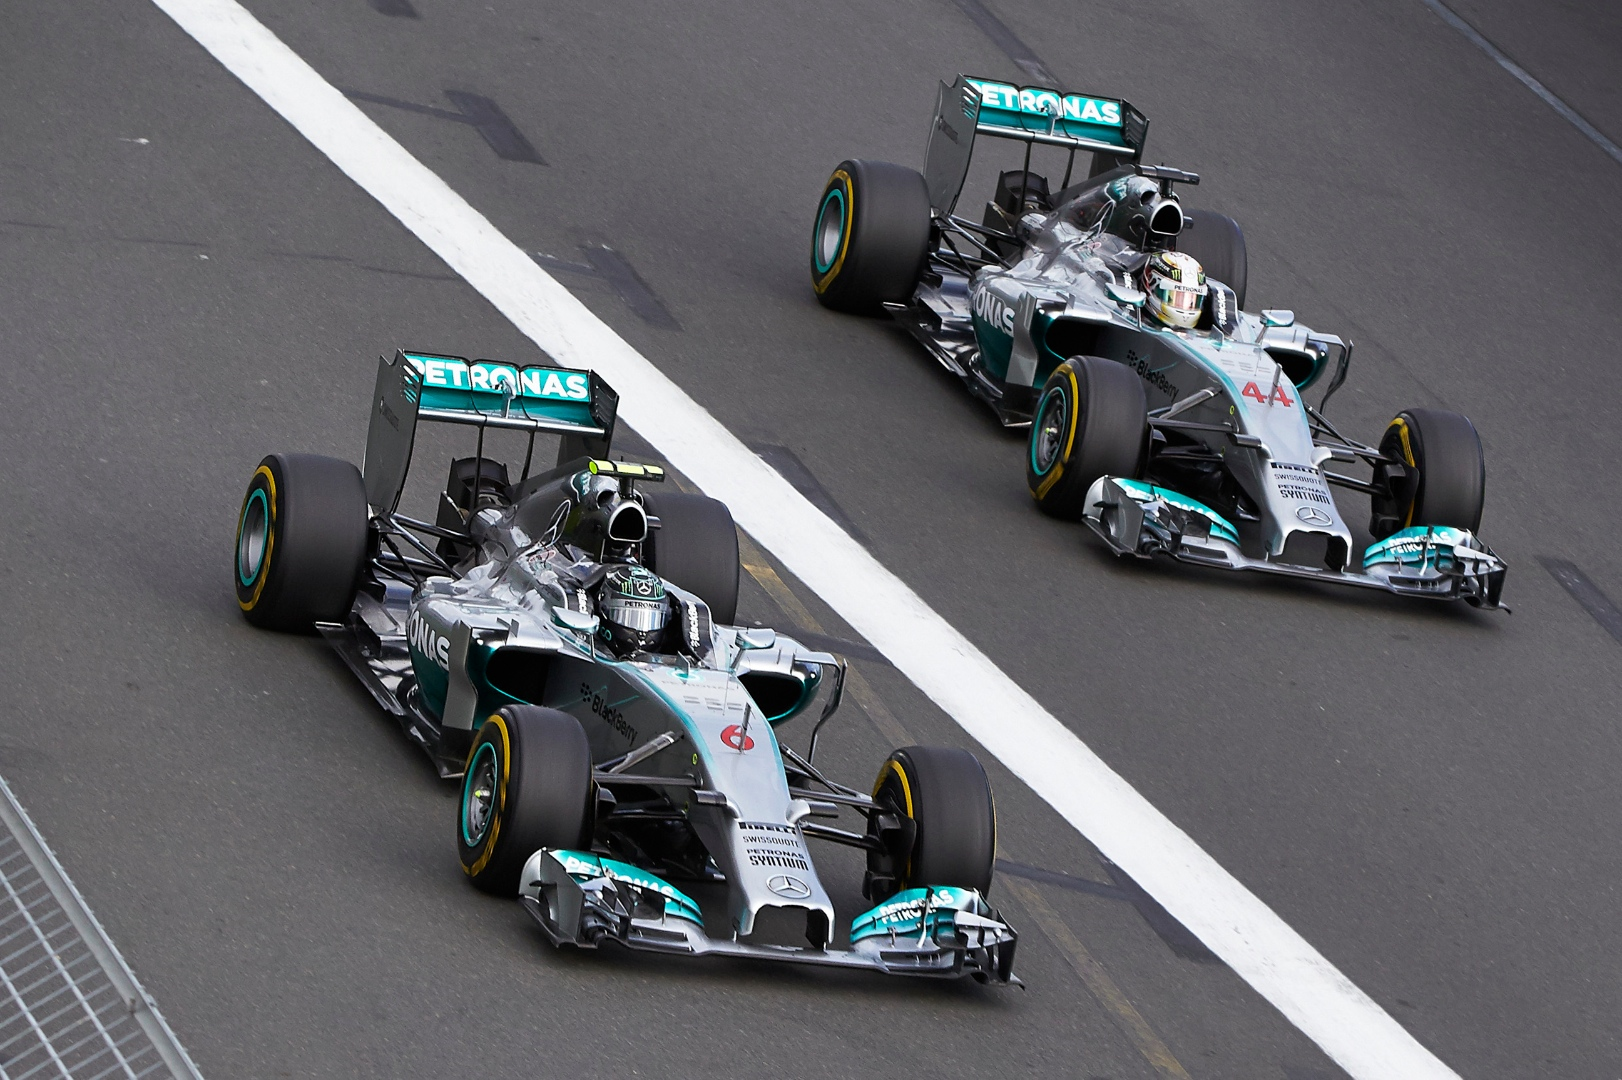 Mercedes Amg F1 Coupon Code Zales Printable Coupons 2018